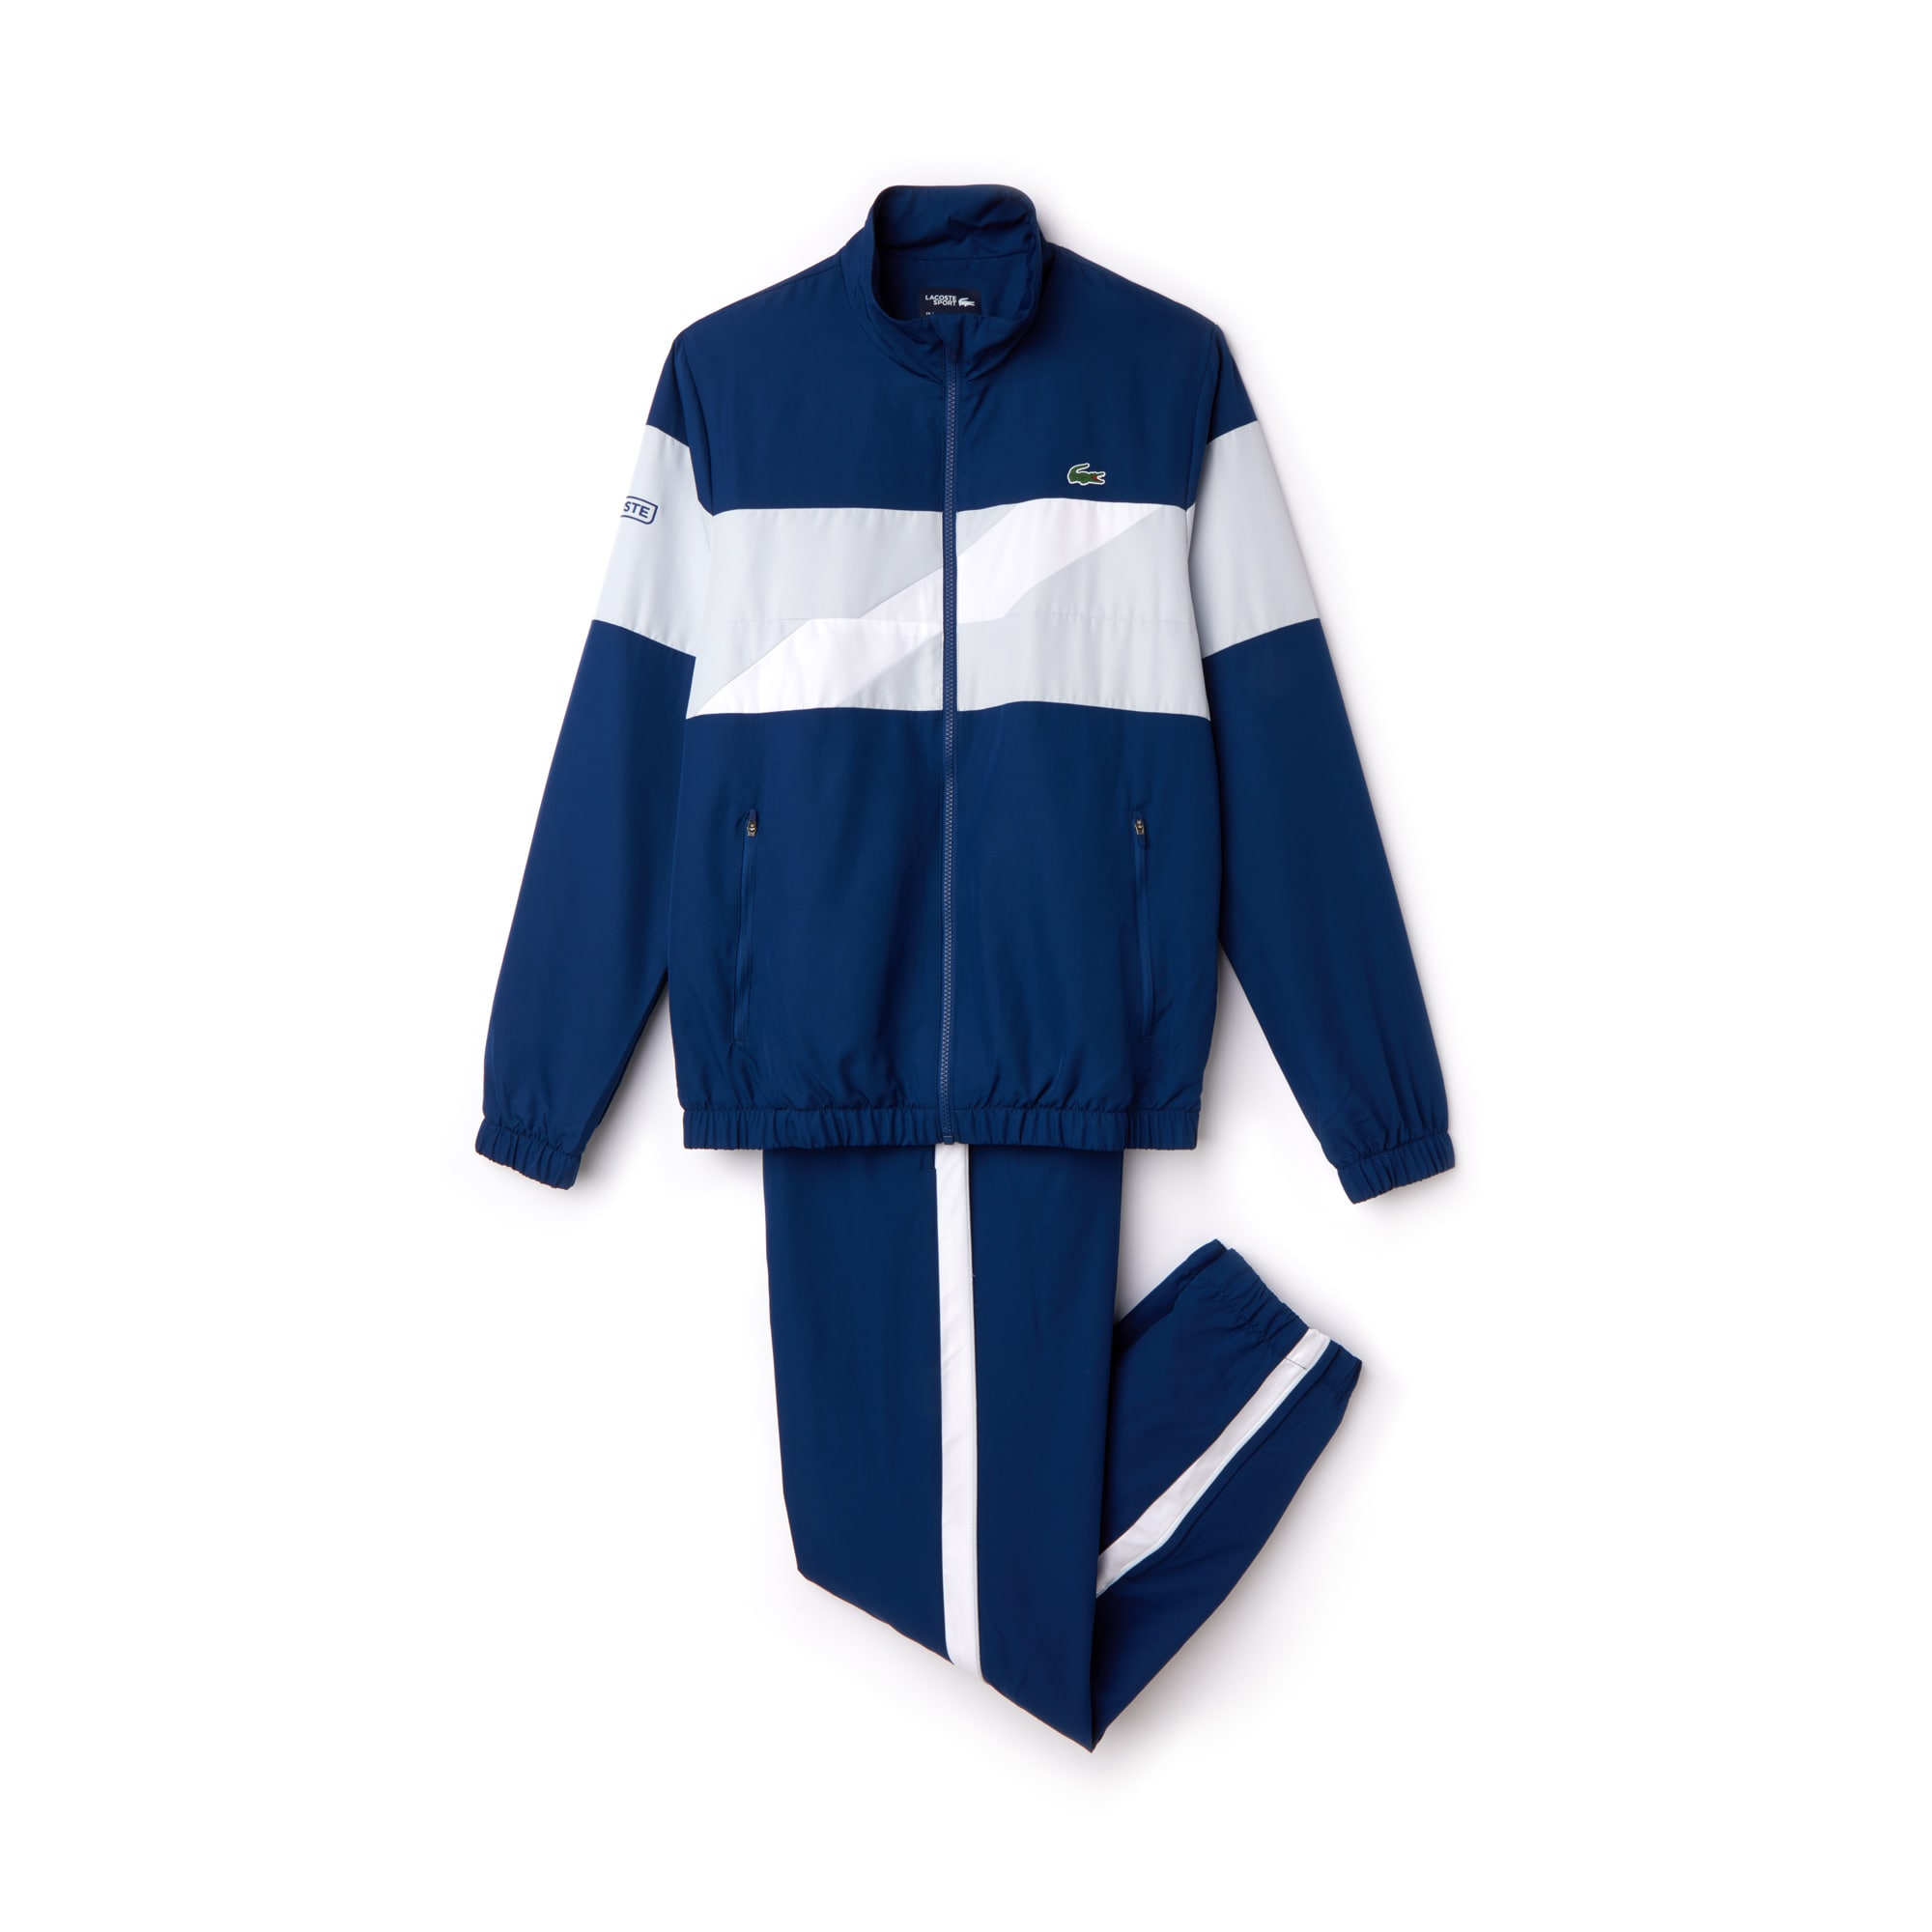 d8c377b13b Men's Lacoste SPORT Colored Bands Taffeta Tennis Tracksuit ...